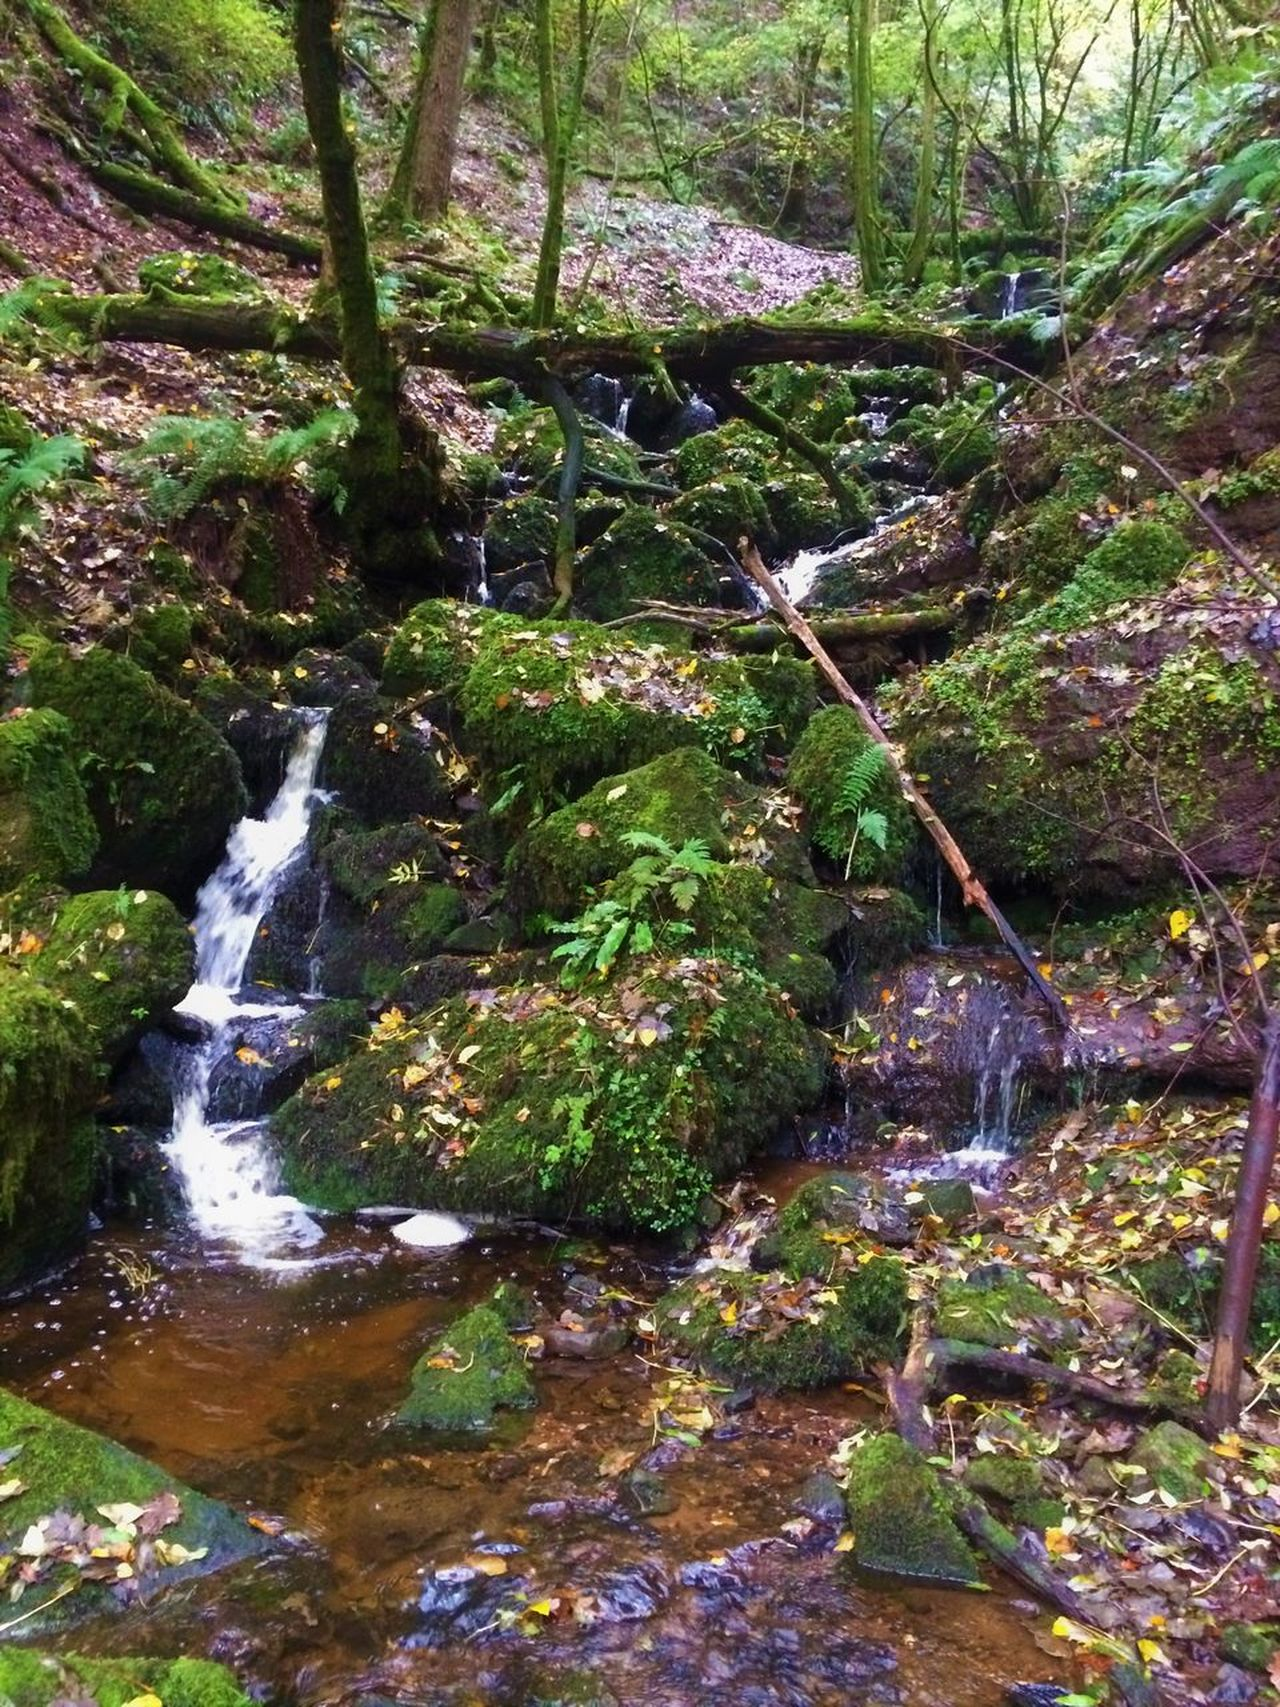 Beauty In Nature Flowing Flowing Water Forest Growth Moss Motion Nature No People Outdoors Plant Rock - Object Stream Tranquility Tree Water Waterfall